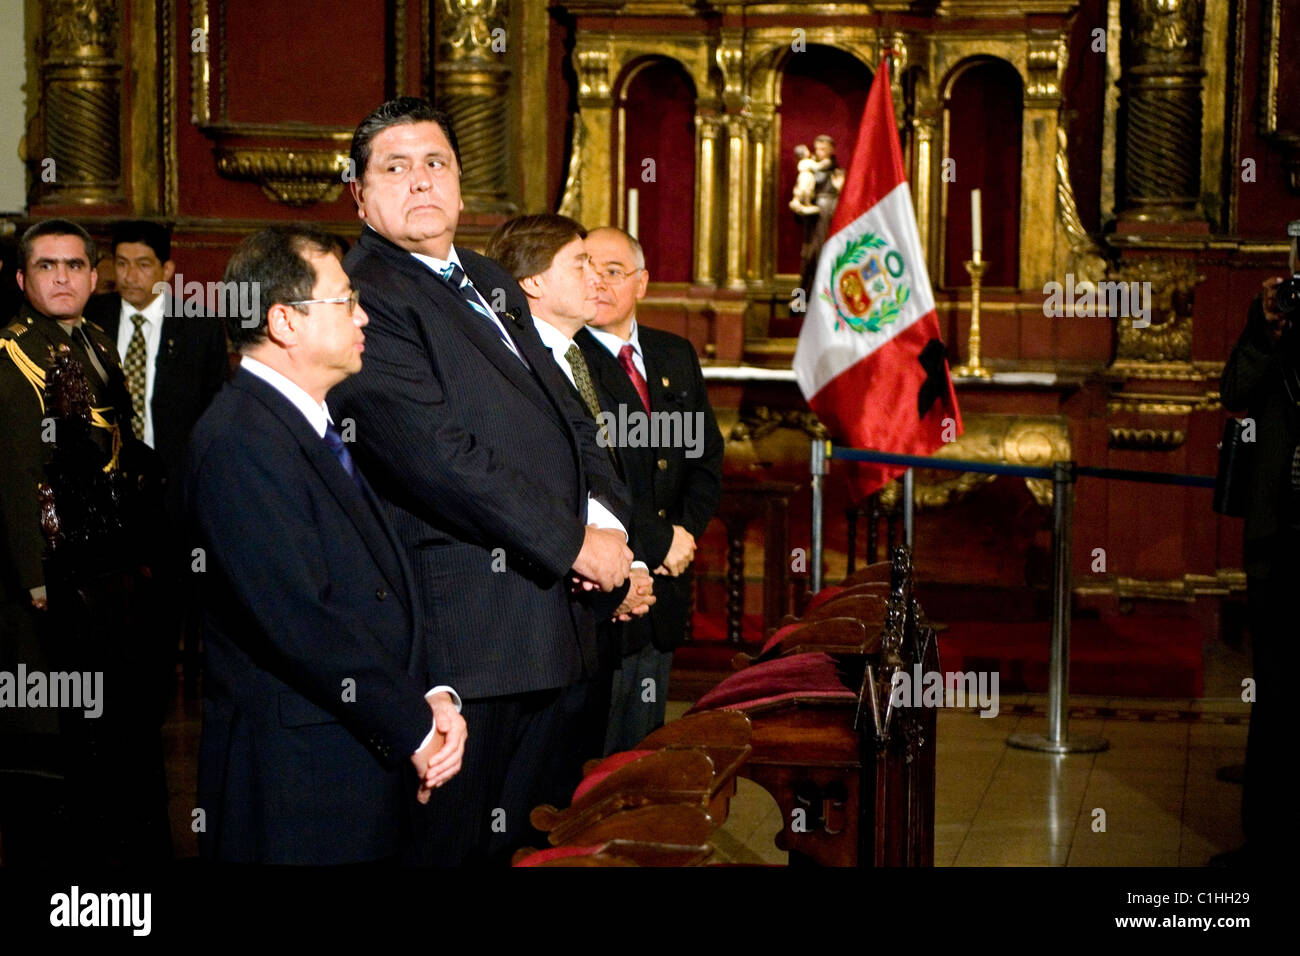 Peruvian President Alan Garcia with Japanese ambassador Takako Akamine in the cathedtal of Lima, Peru'. - Stock Image